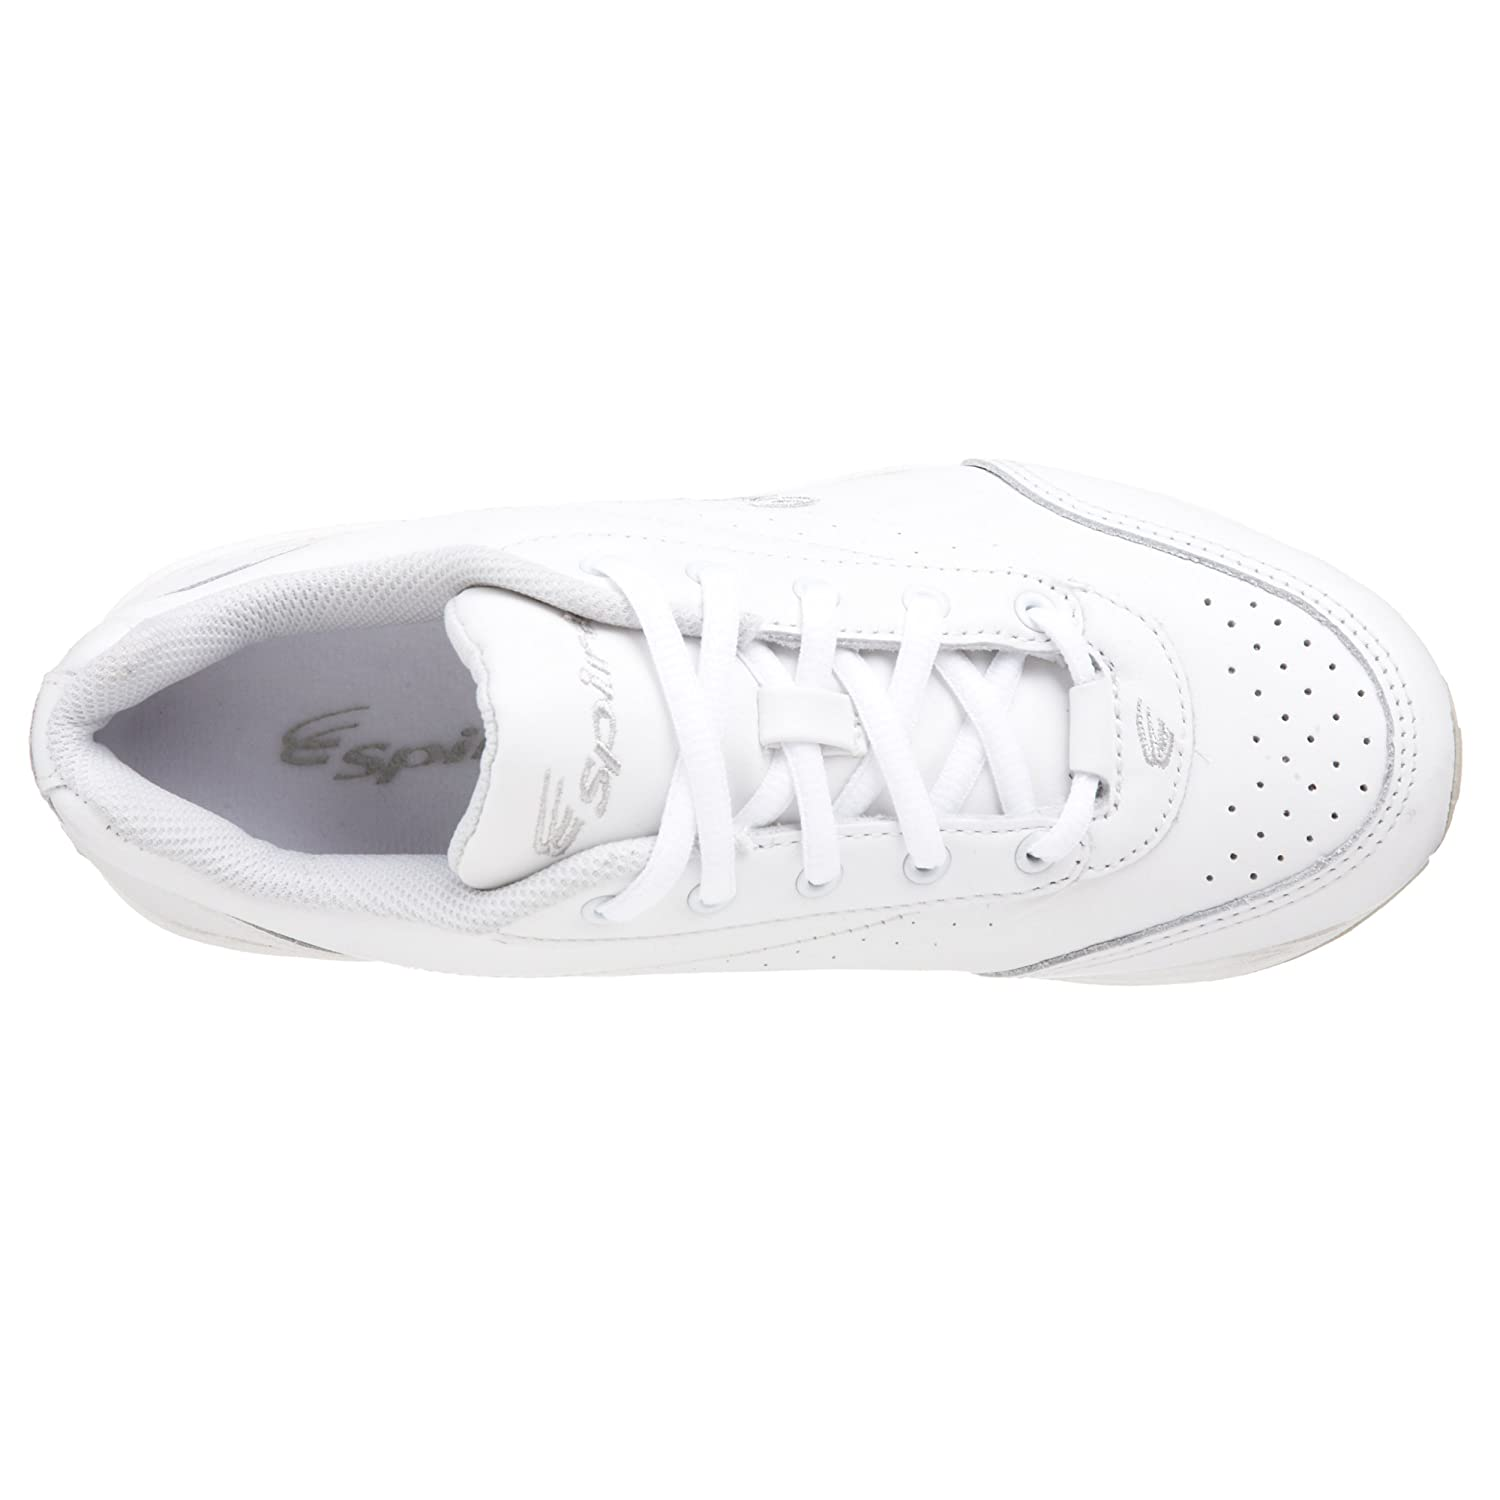 Spira Women's Classic Leather Walking Shoe B000J0ZKWE 9.5 2E|White/White